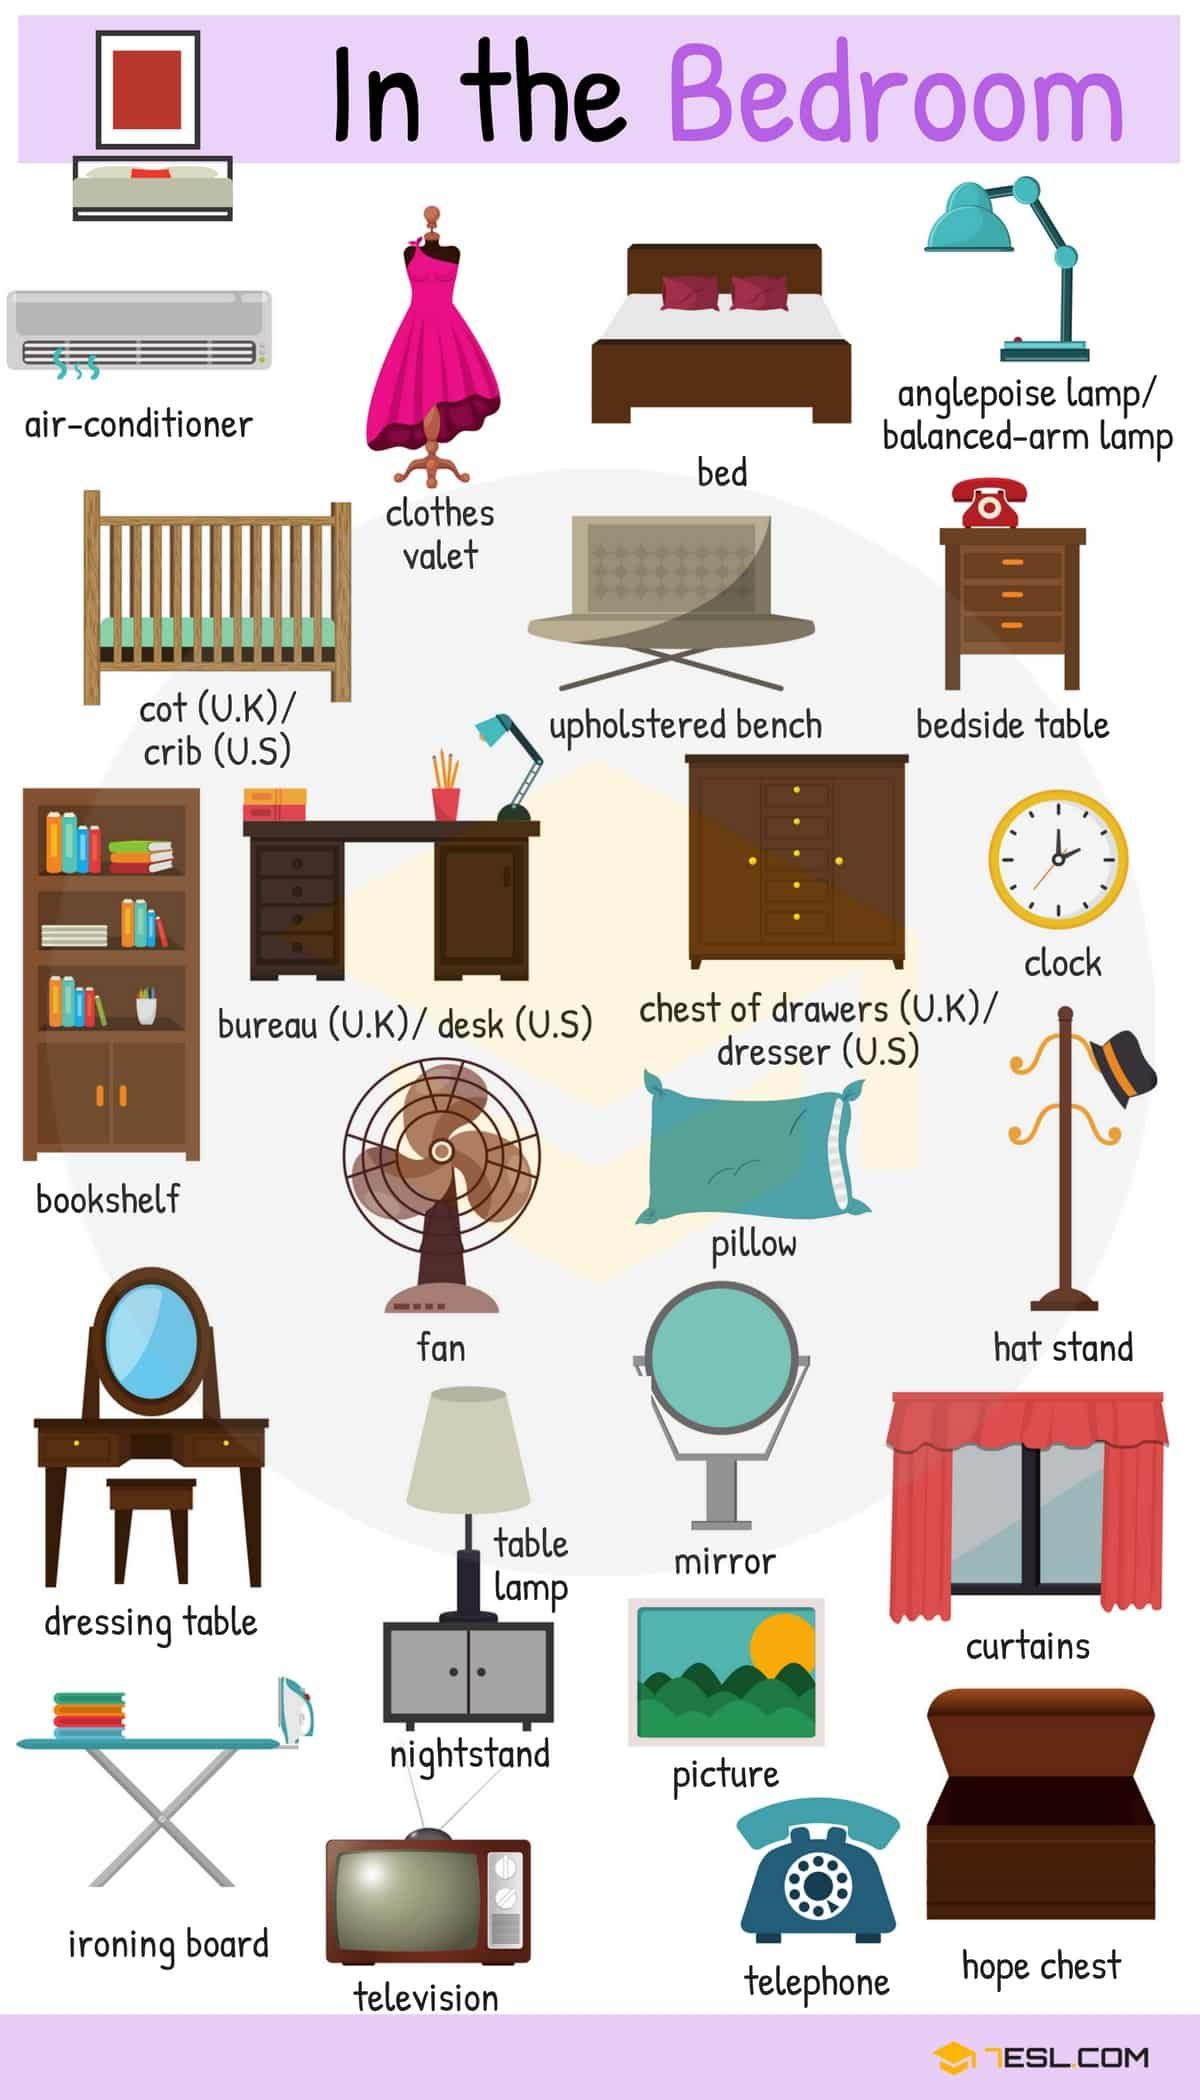 Bedroom Furniture Things In The Bedroom With Pictures 7 E S L English Vocabulary Learning English For Kids Learn English Vocabulary